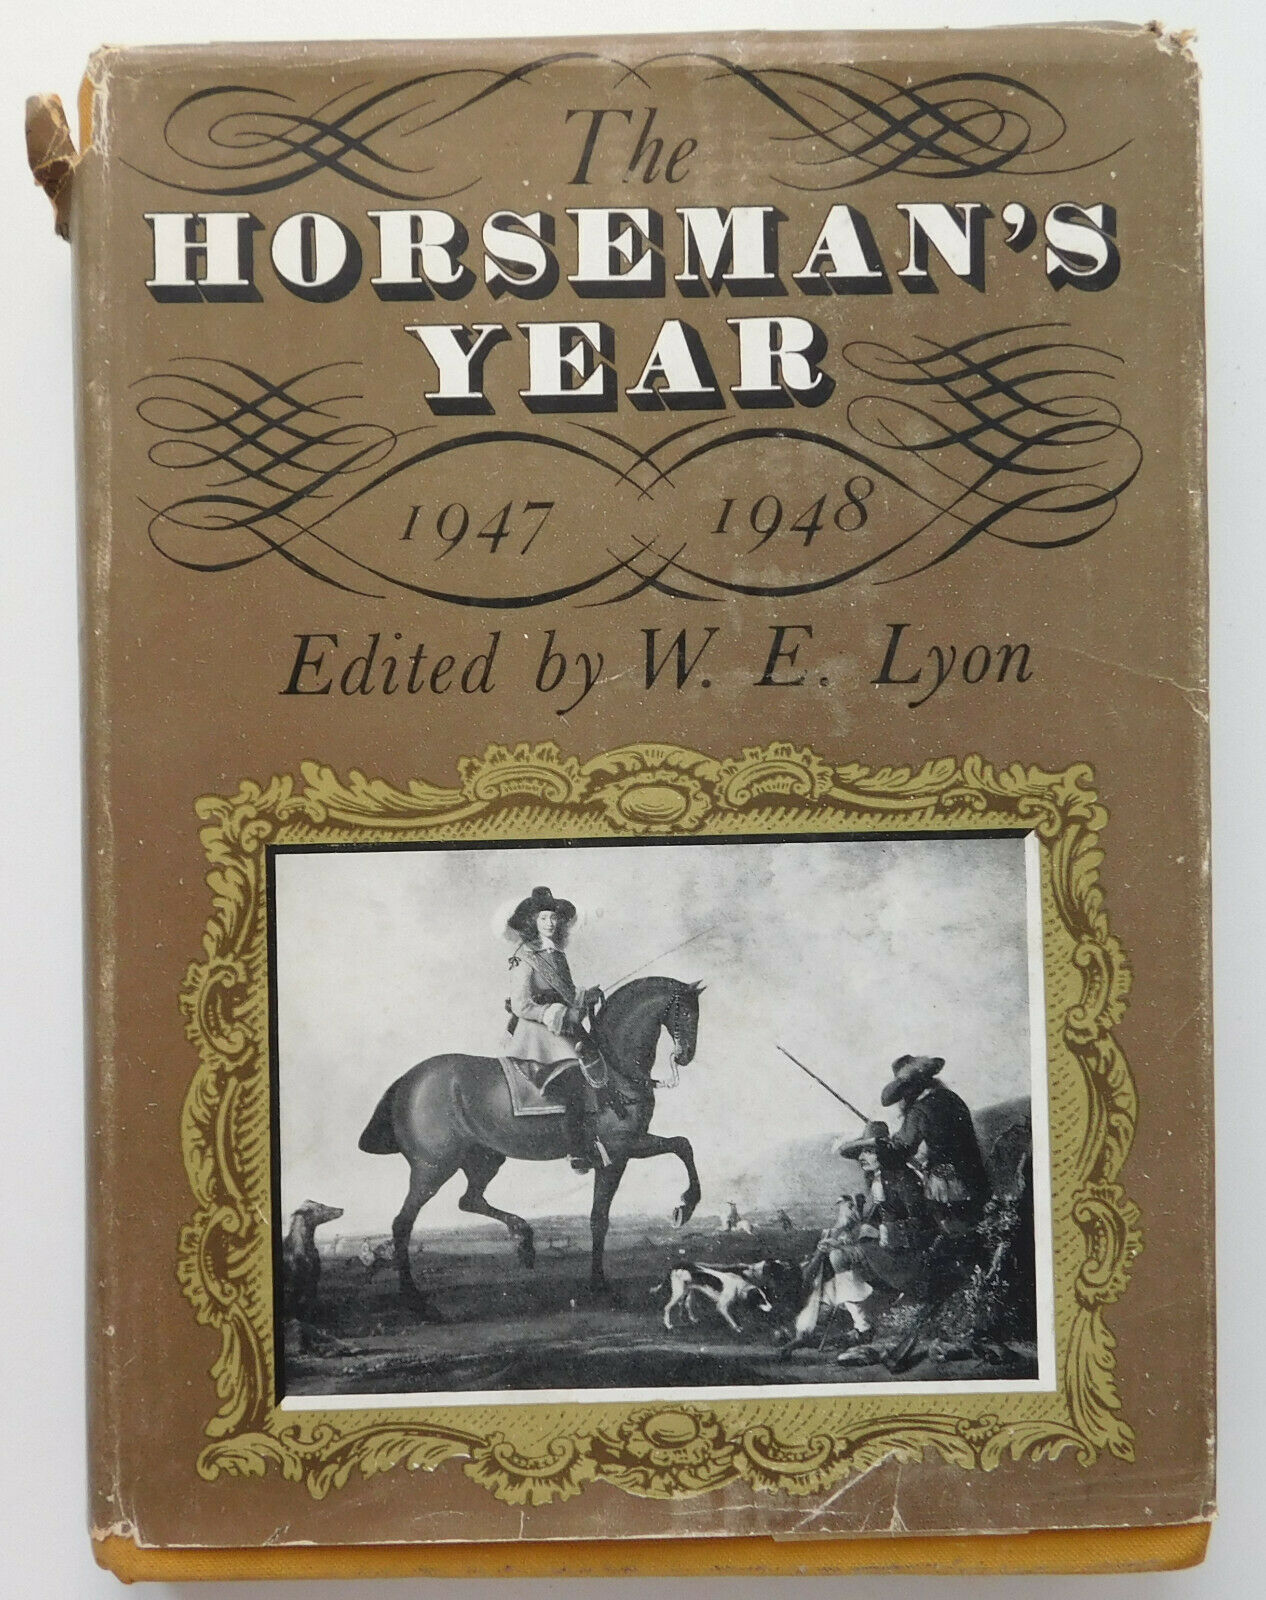 The Horseman's Year book 1947 to 1948 equestrian horses racing fox hunting 1940s